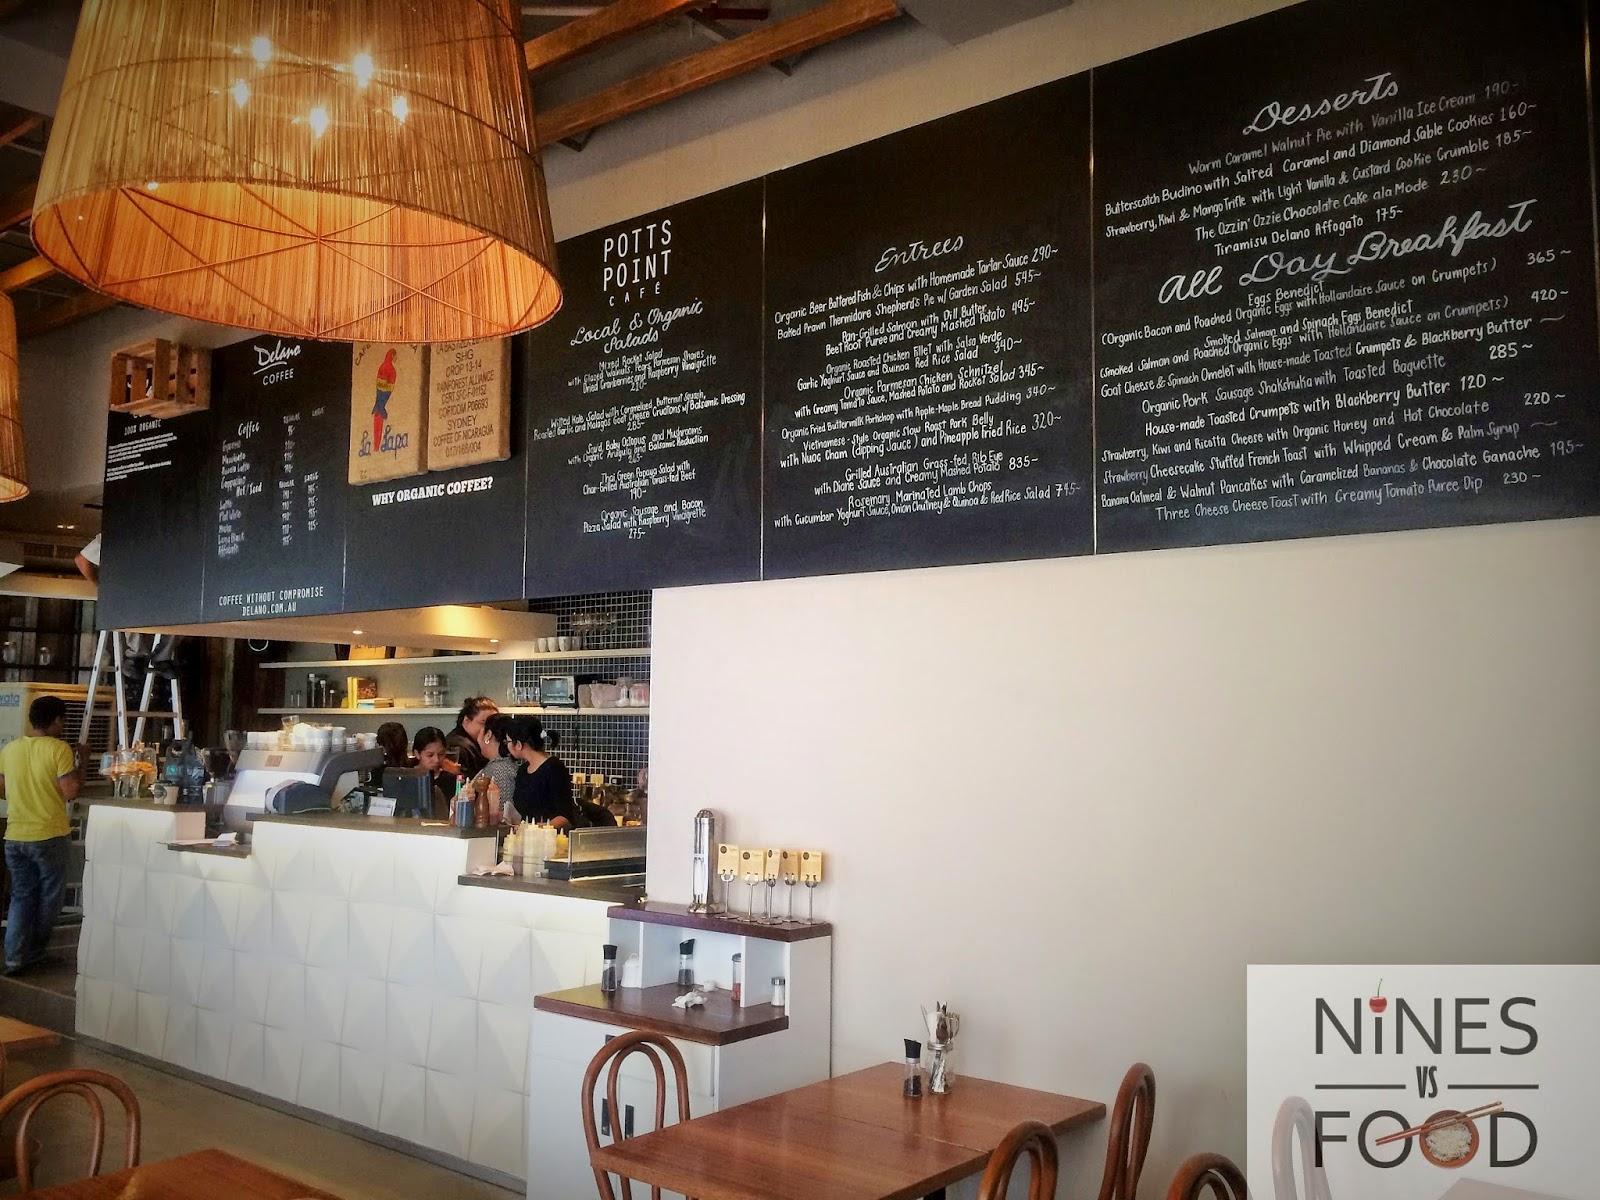 Nines vs. Food - Potts Point Cafe-3.jpg